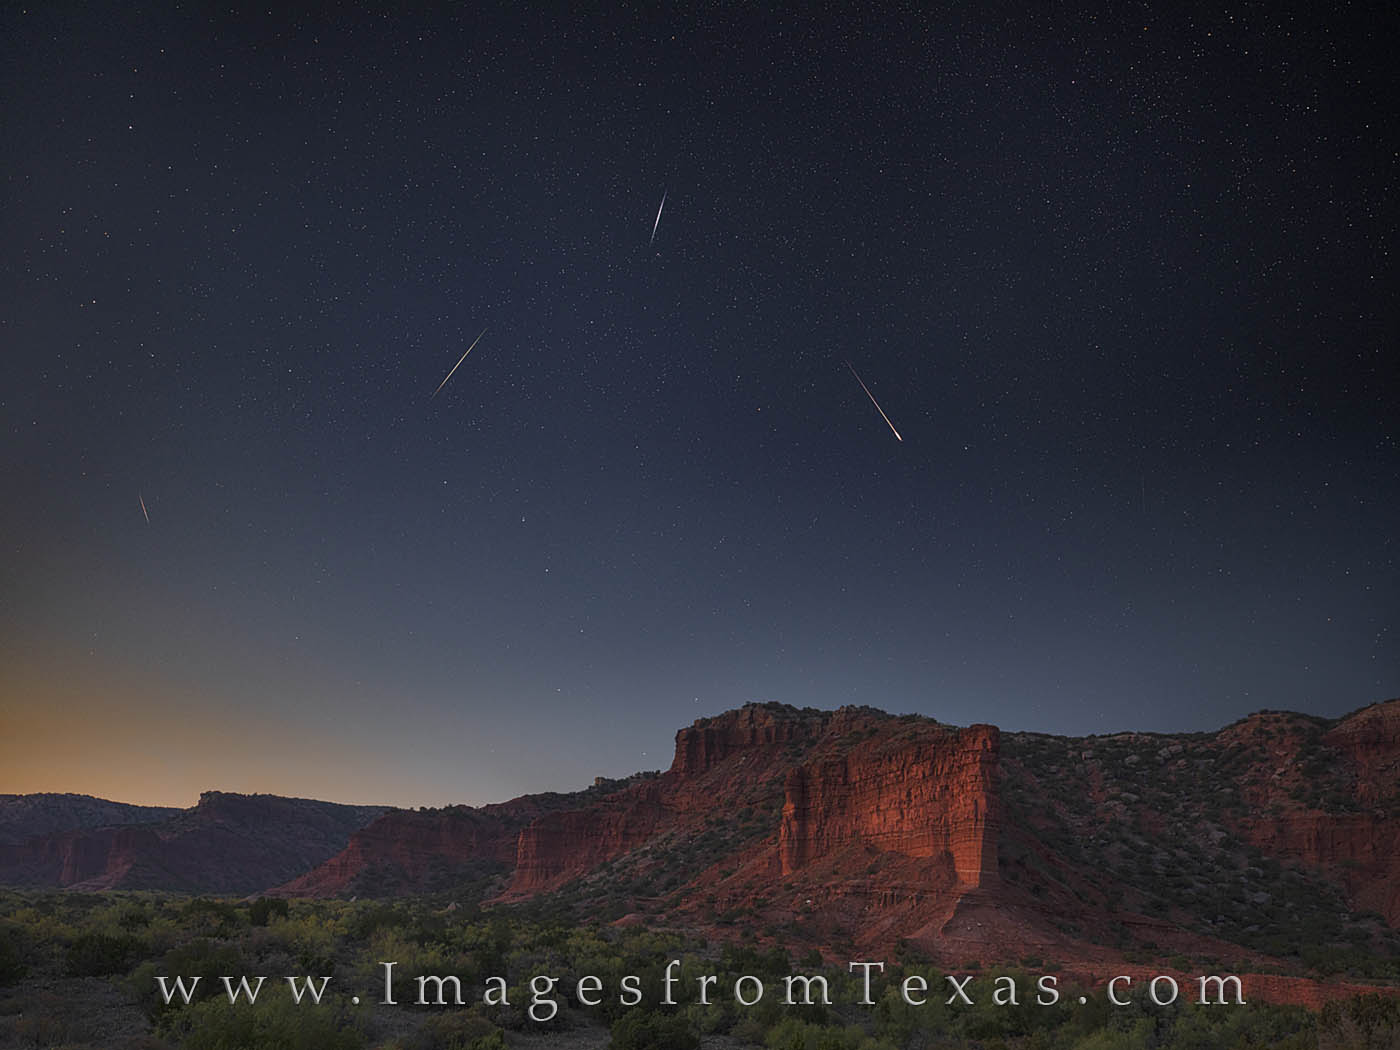 caprock canyons state park, caprock canyons prints, texas prints, west texas, draconids, meteors, night sky, star tracker, west texas, texas landscapes, photo